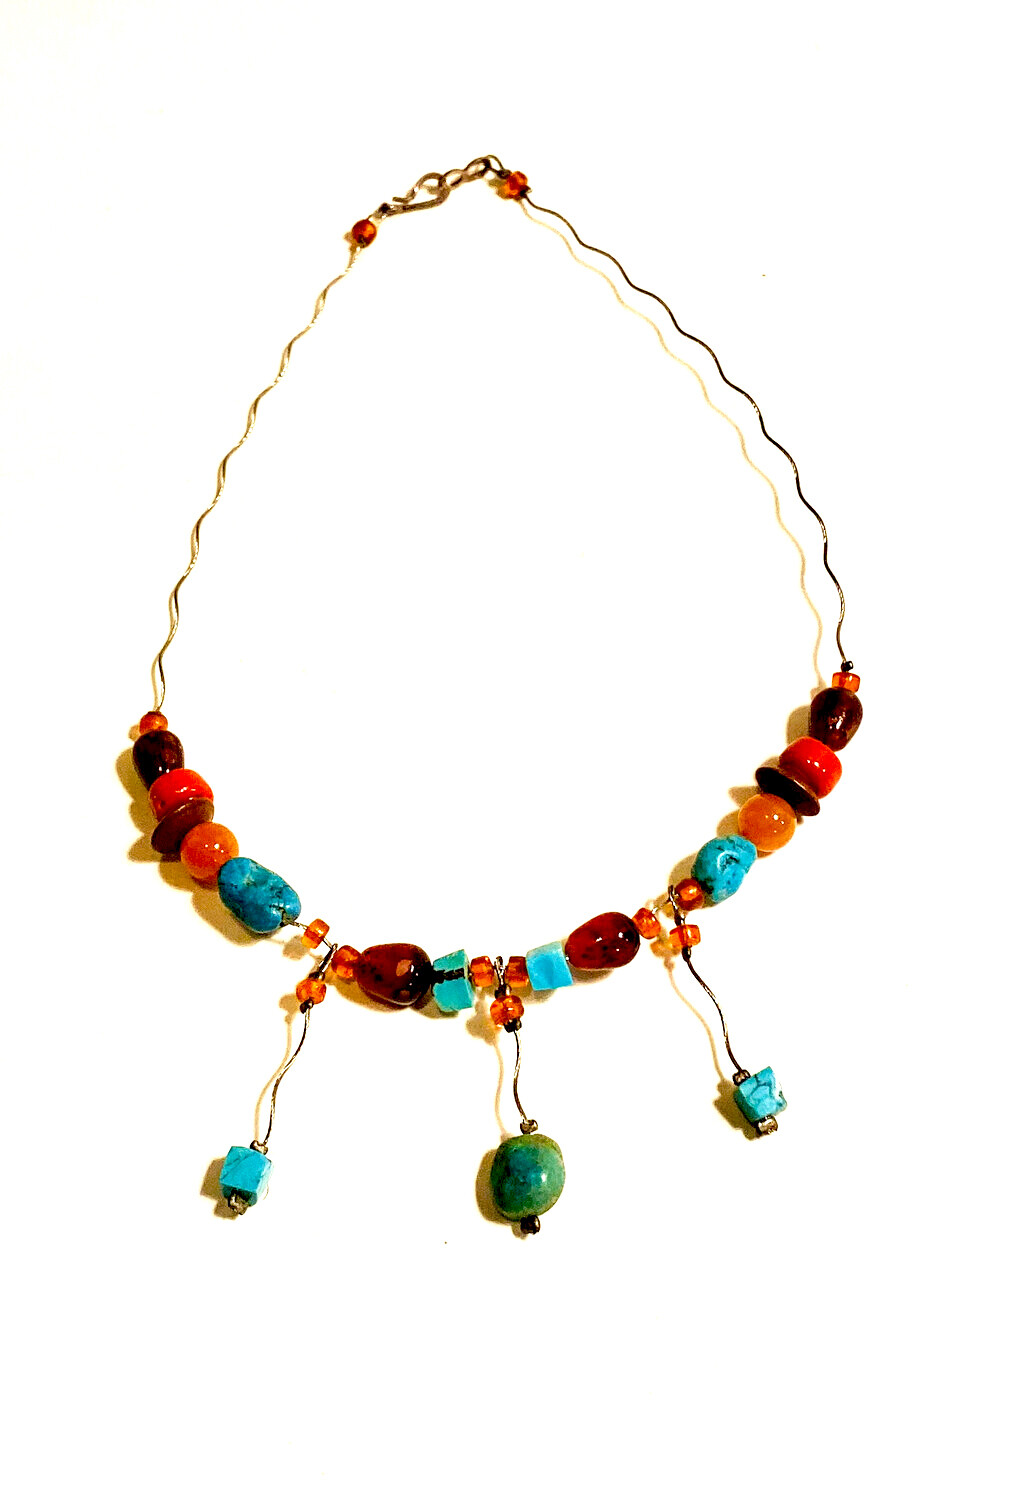 Necklace / Bracelet Multicolored